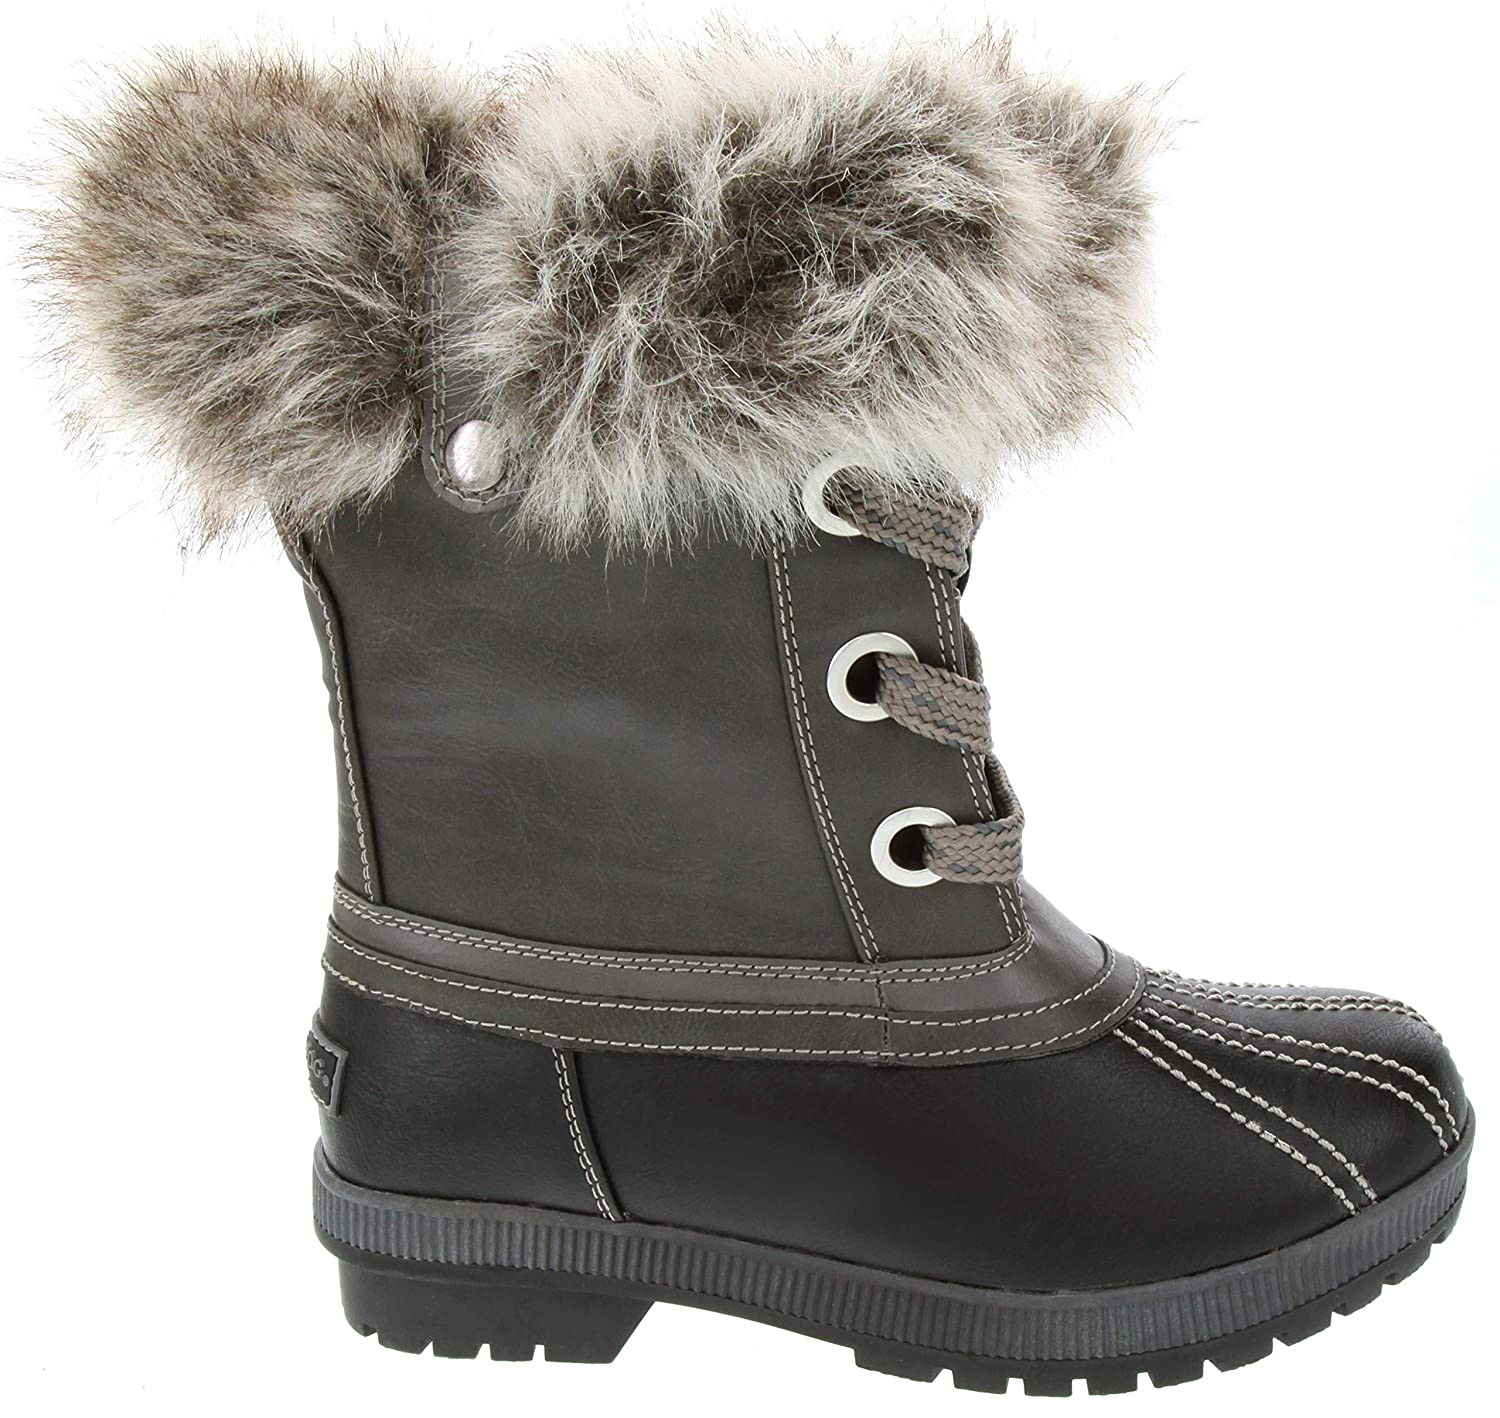 London Fog Milly Cold Weather Waterproof Snow Boot